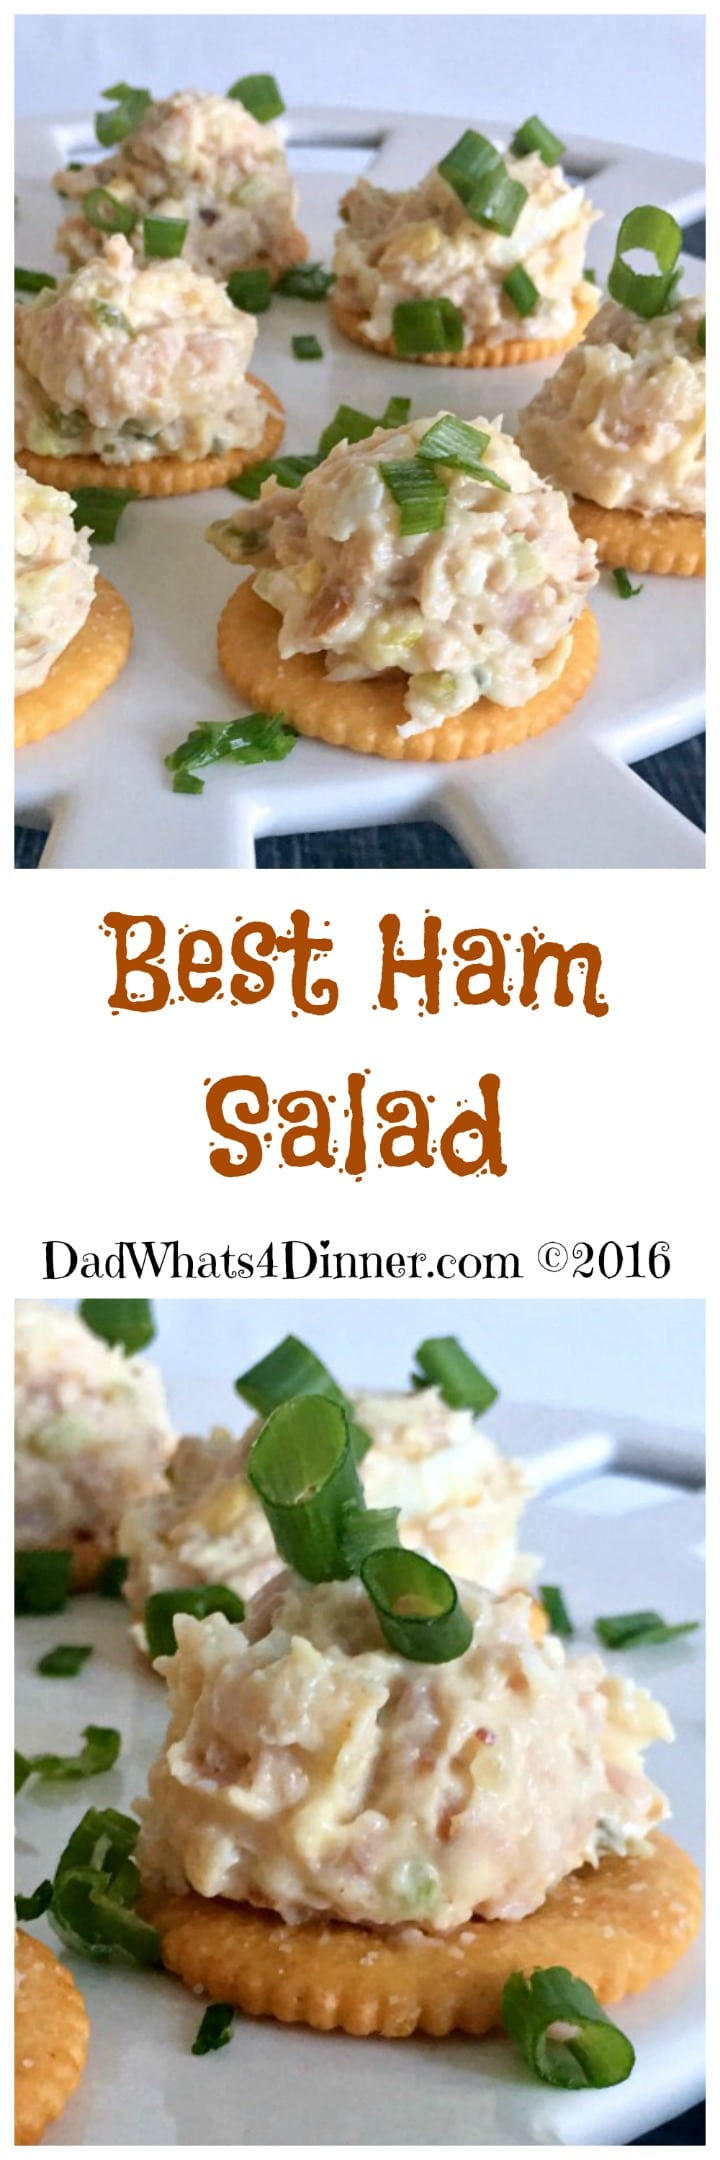 My Best Ham Salad is the perfect recipe to use up that leftover holiday ham. Creamy and smooth goes great on a cracker or a sandwich! #NewYearsEve #Leftovers #Ham #Salad #Spread